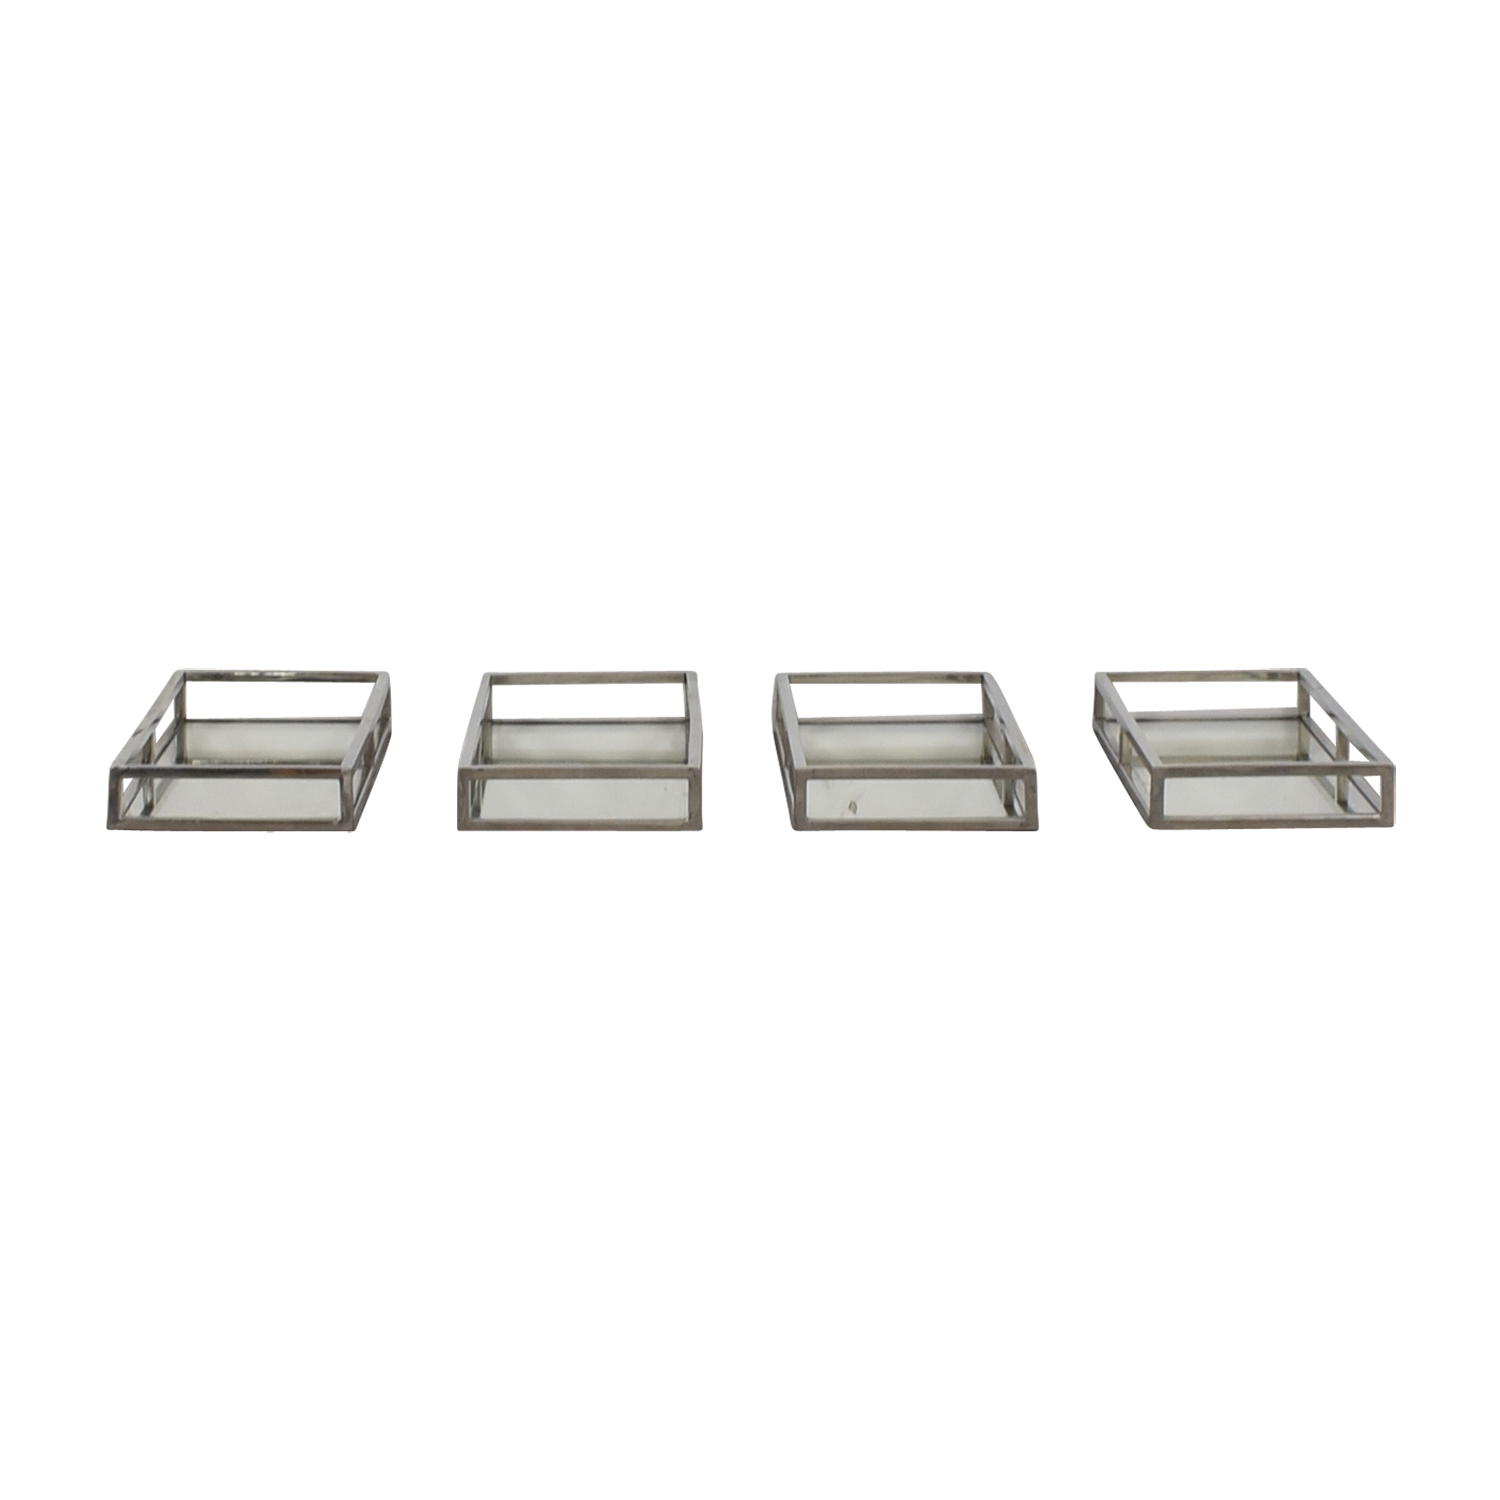 Mitchell Gold + Bob Williams Mitchell Gold + Bob Williams Luxe Rectangle Stainless Steel Trays with Mirrors nyc